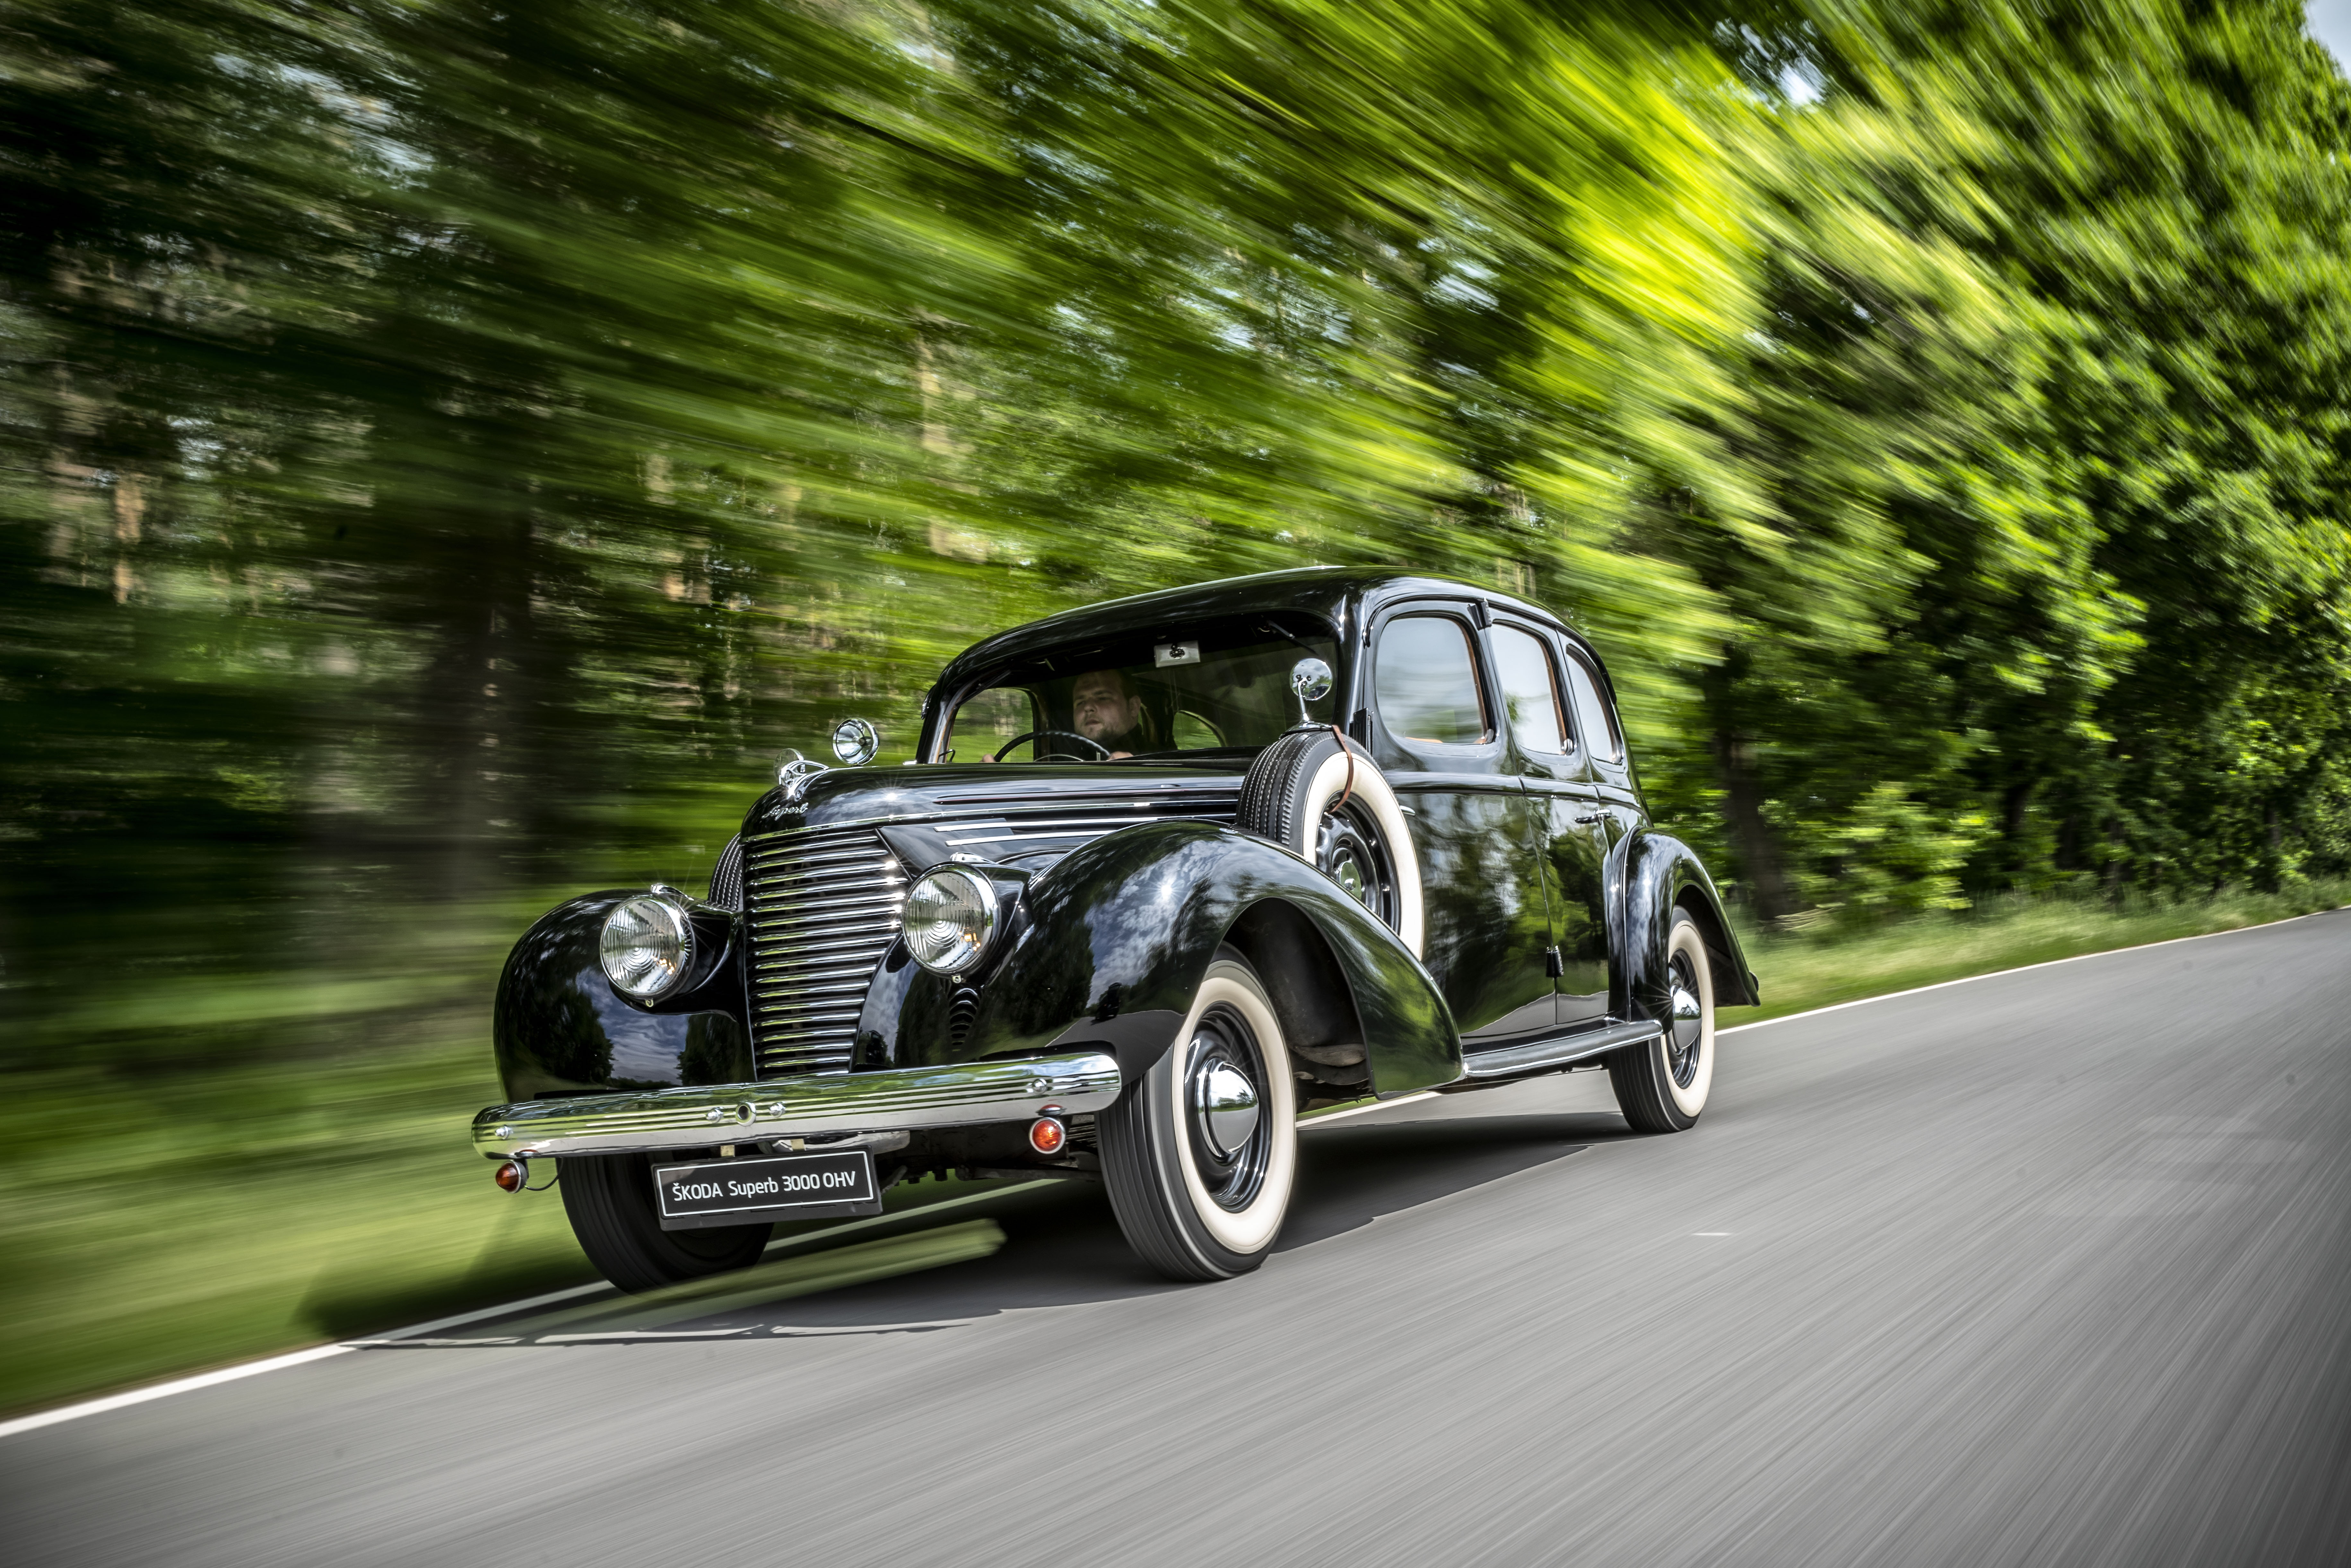 125 years of SKODA: A journey through time with twelve automotive milestones from the company's history - Image 6